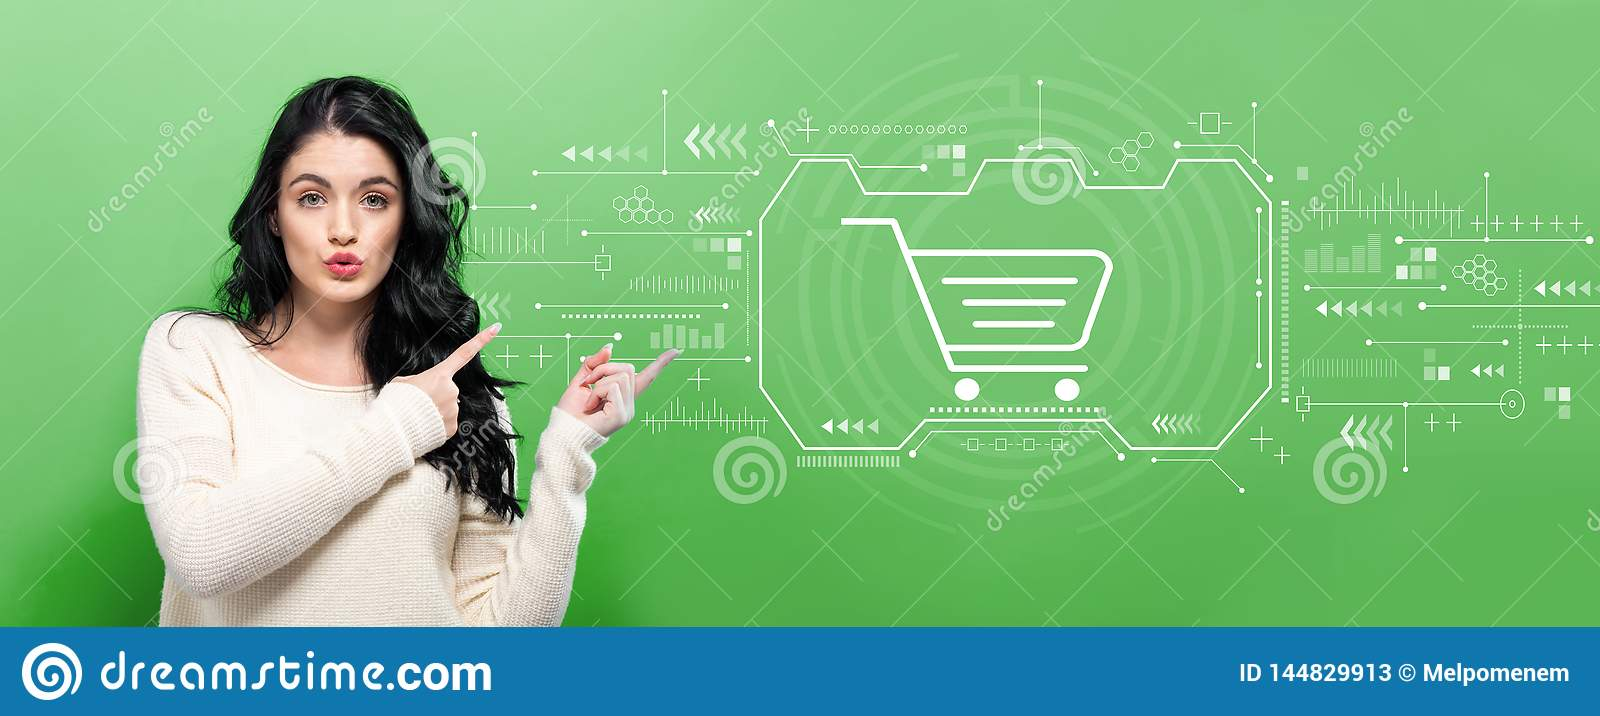 Online shopping theme with young woman